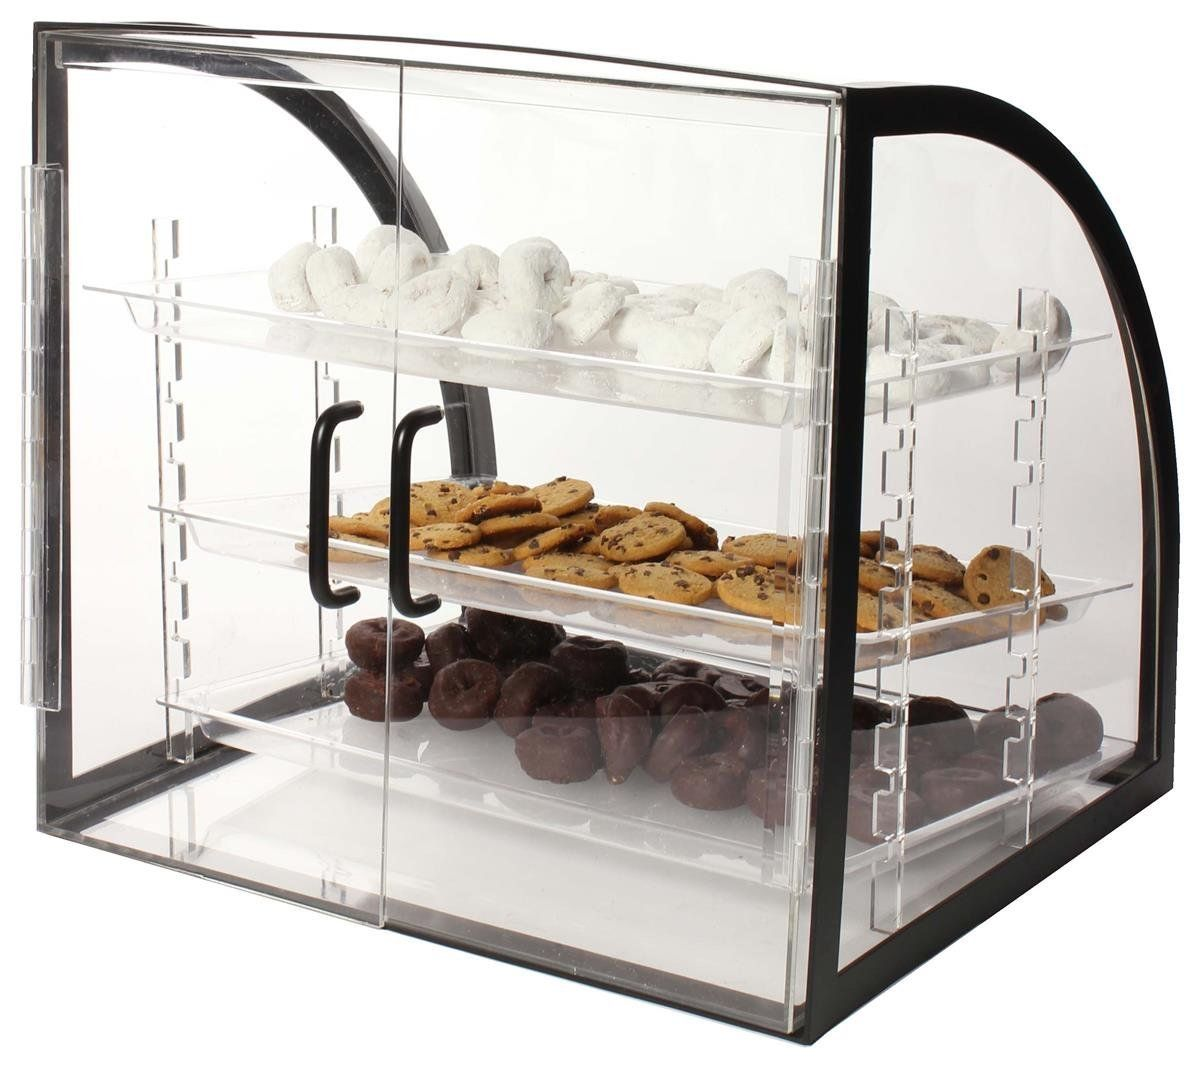 Countertop Food Display Case Amazon Countertop Bakery Display Case Clear Acrylic With